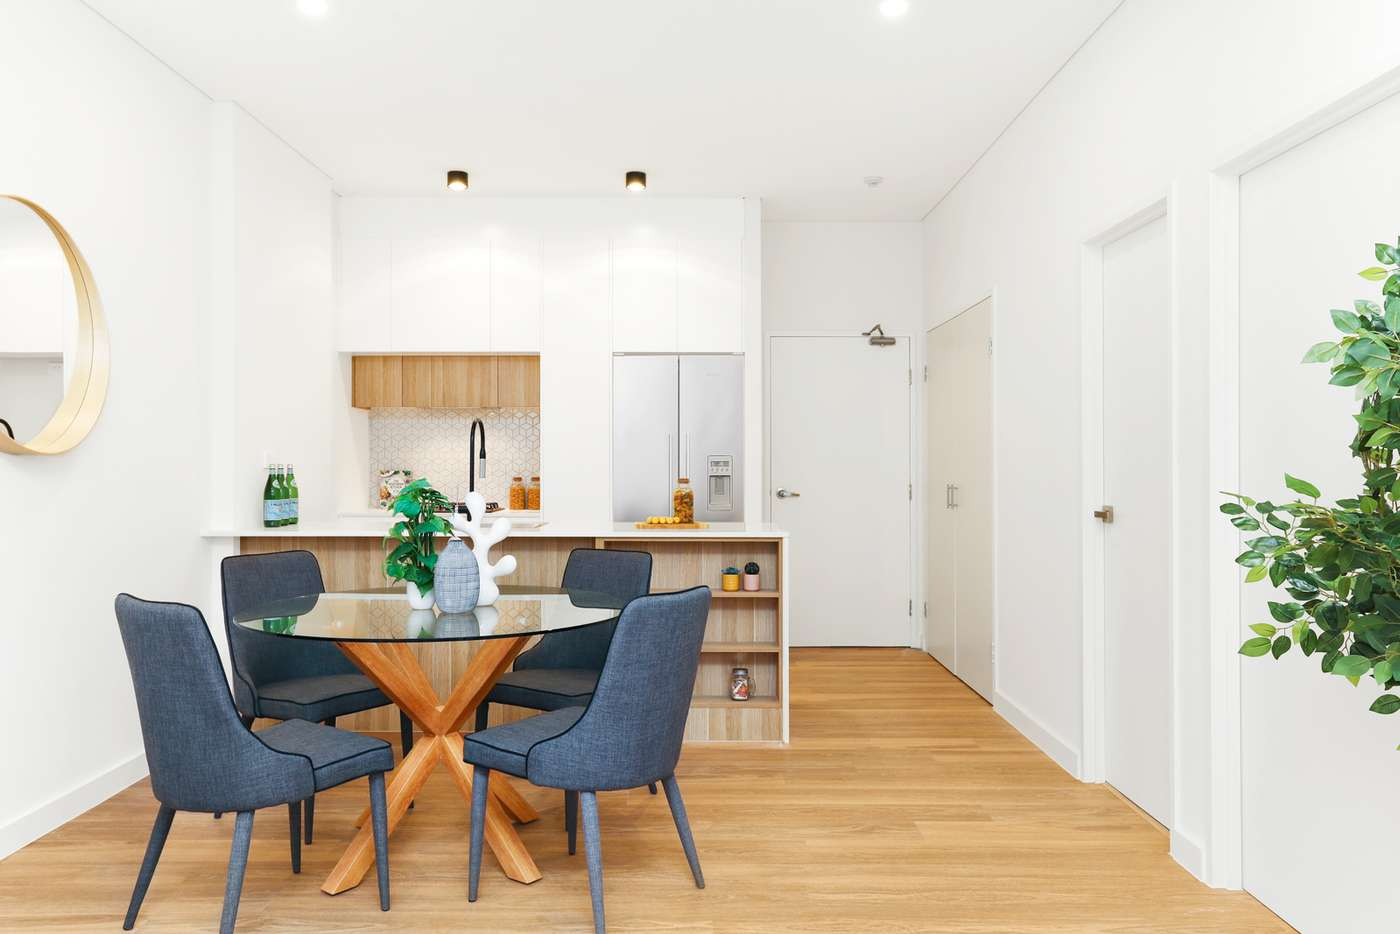 Main view of Homely apartment listing, 102/2 Murrell Street, Ashfield NSW 2131